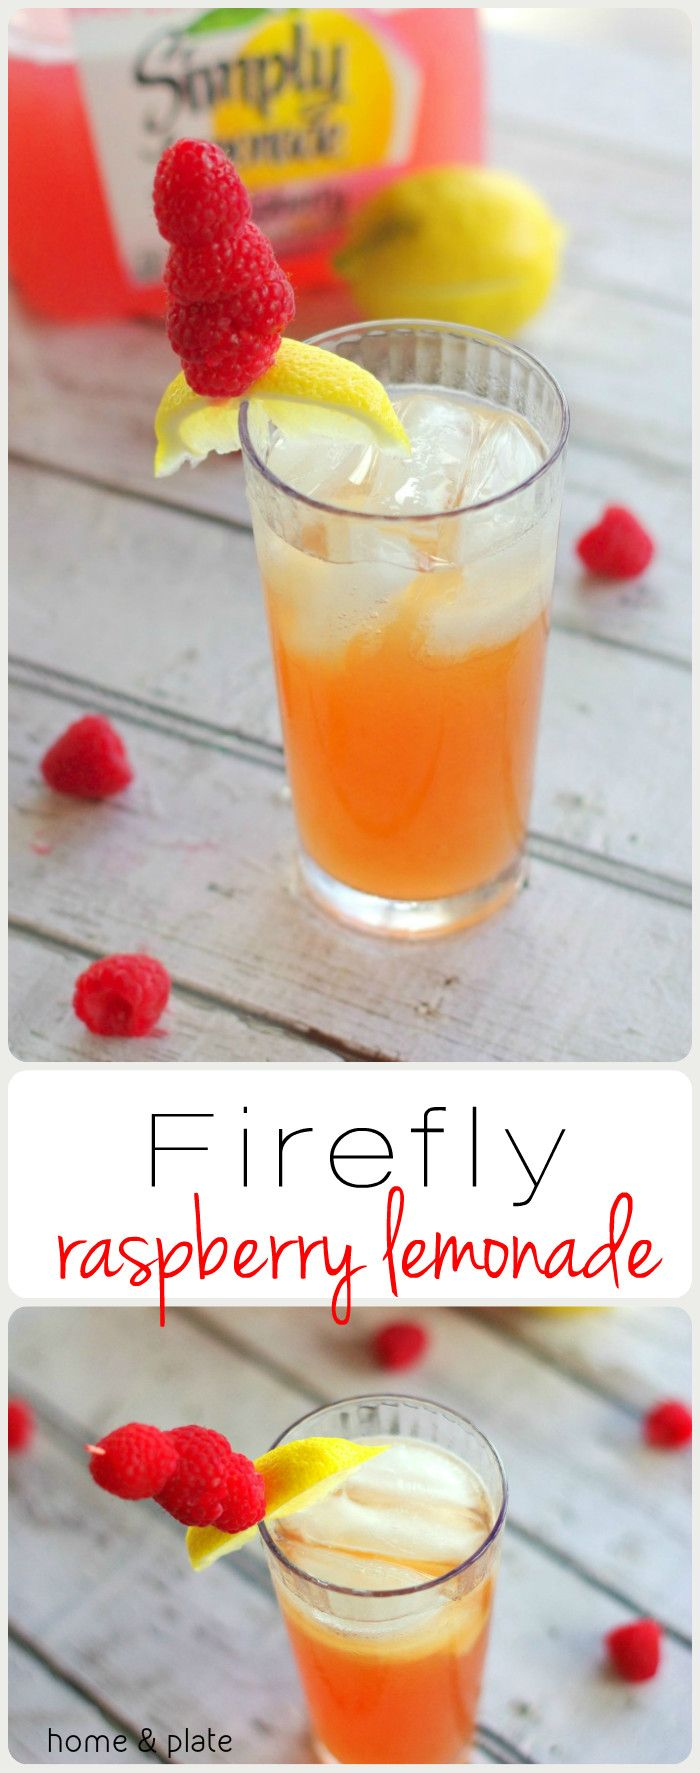 Firefly Raspberry Lemonade Cocktail | Home & Plate | www.homeandplate.com | Sweet tea vodka and raspberry lemonade make a delicious summer cocktail.